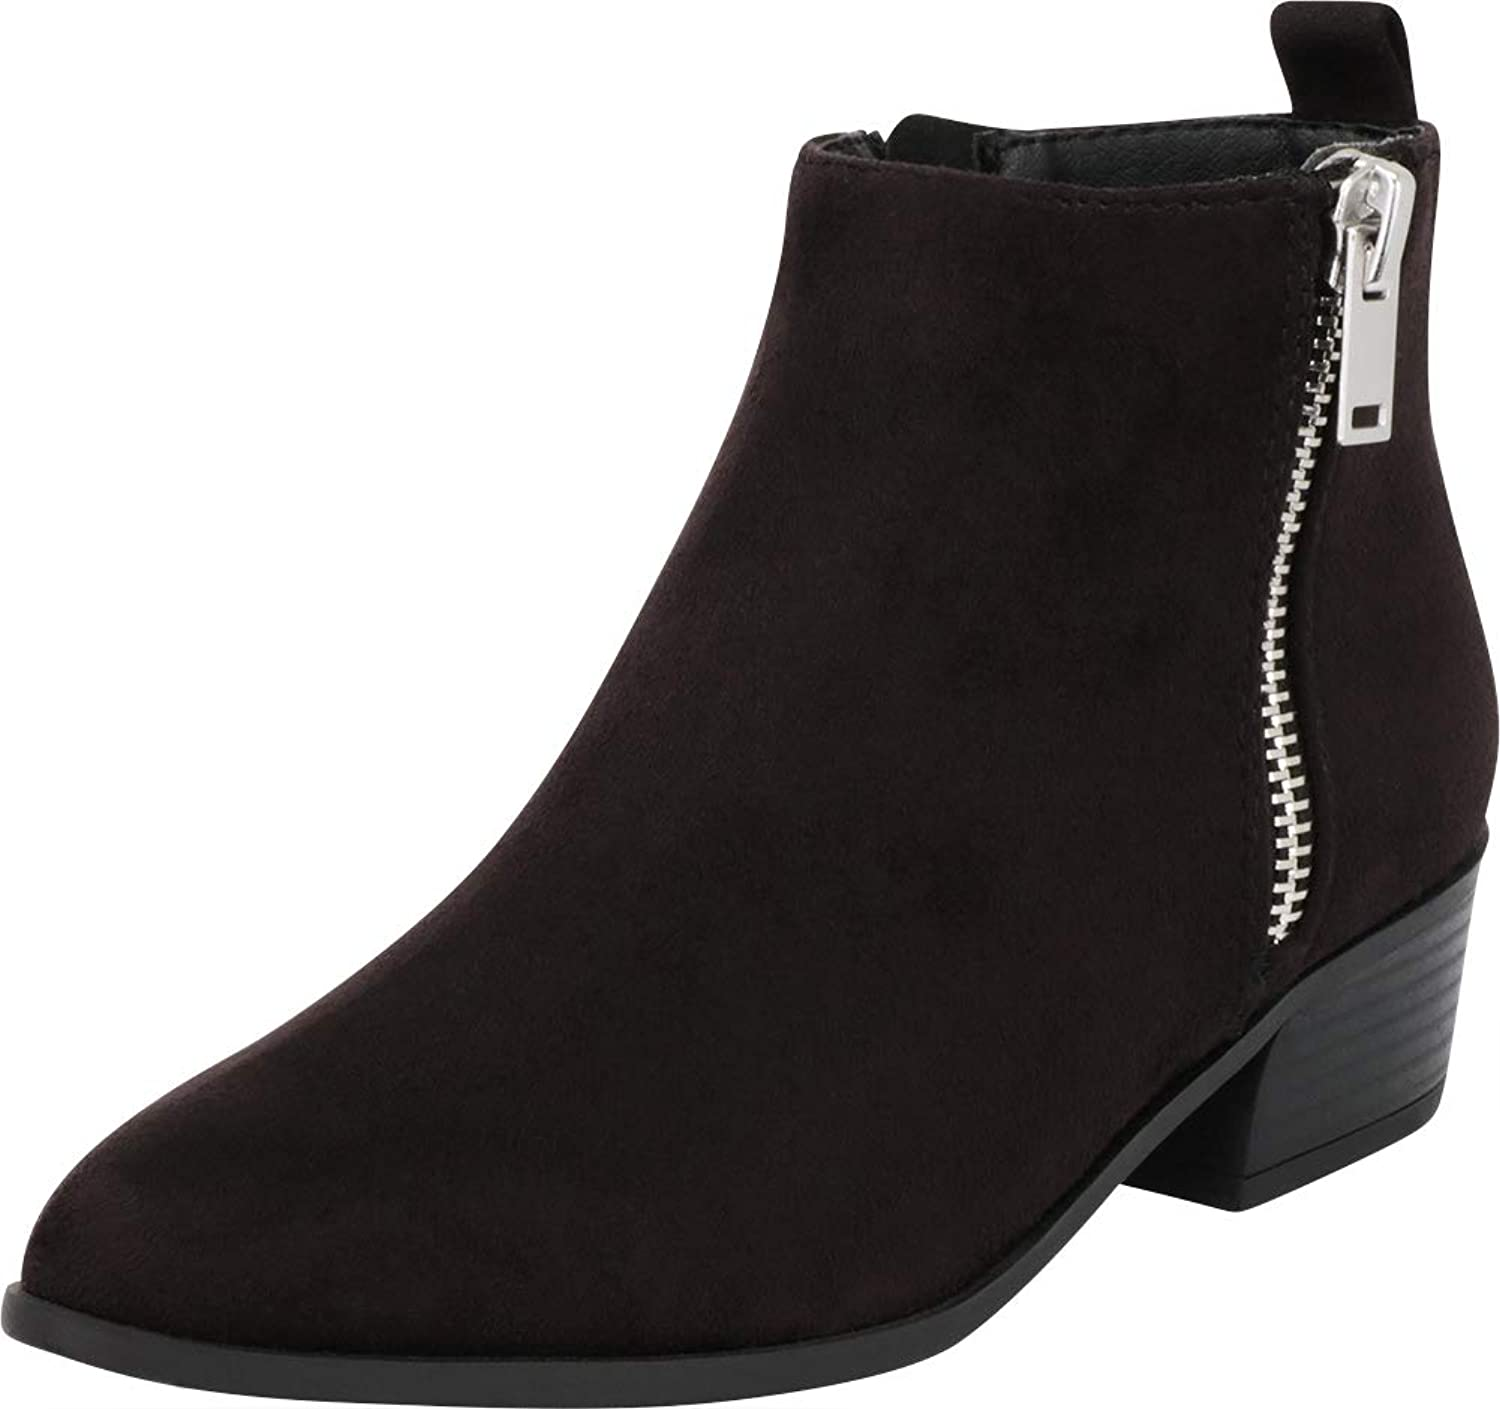 Cambridge Select Women's Pointed Toe Side Zip Chunky Stacked Block Heel Ankle Bootie